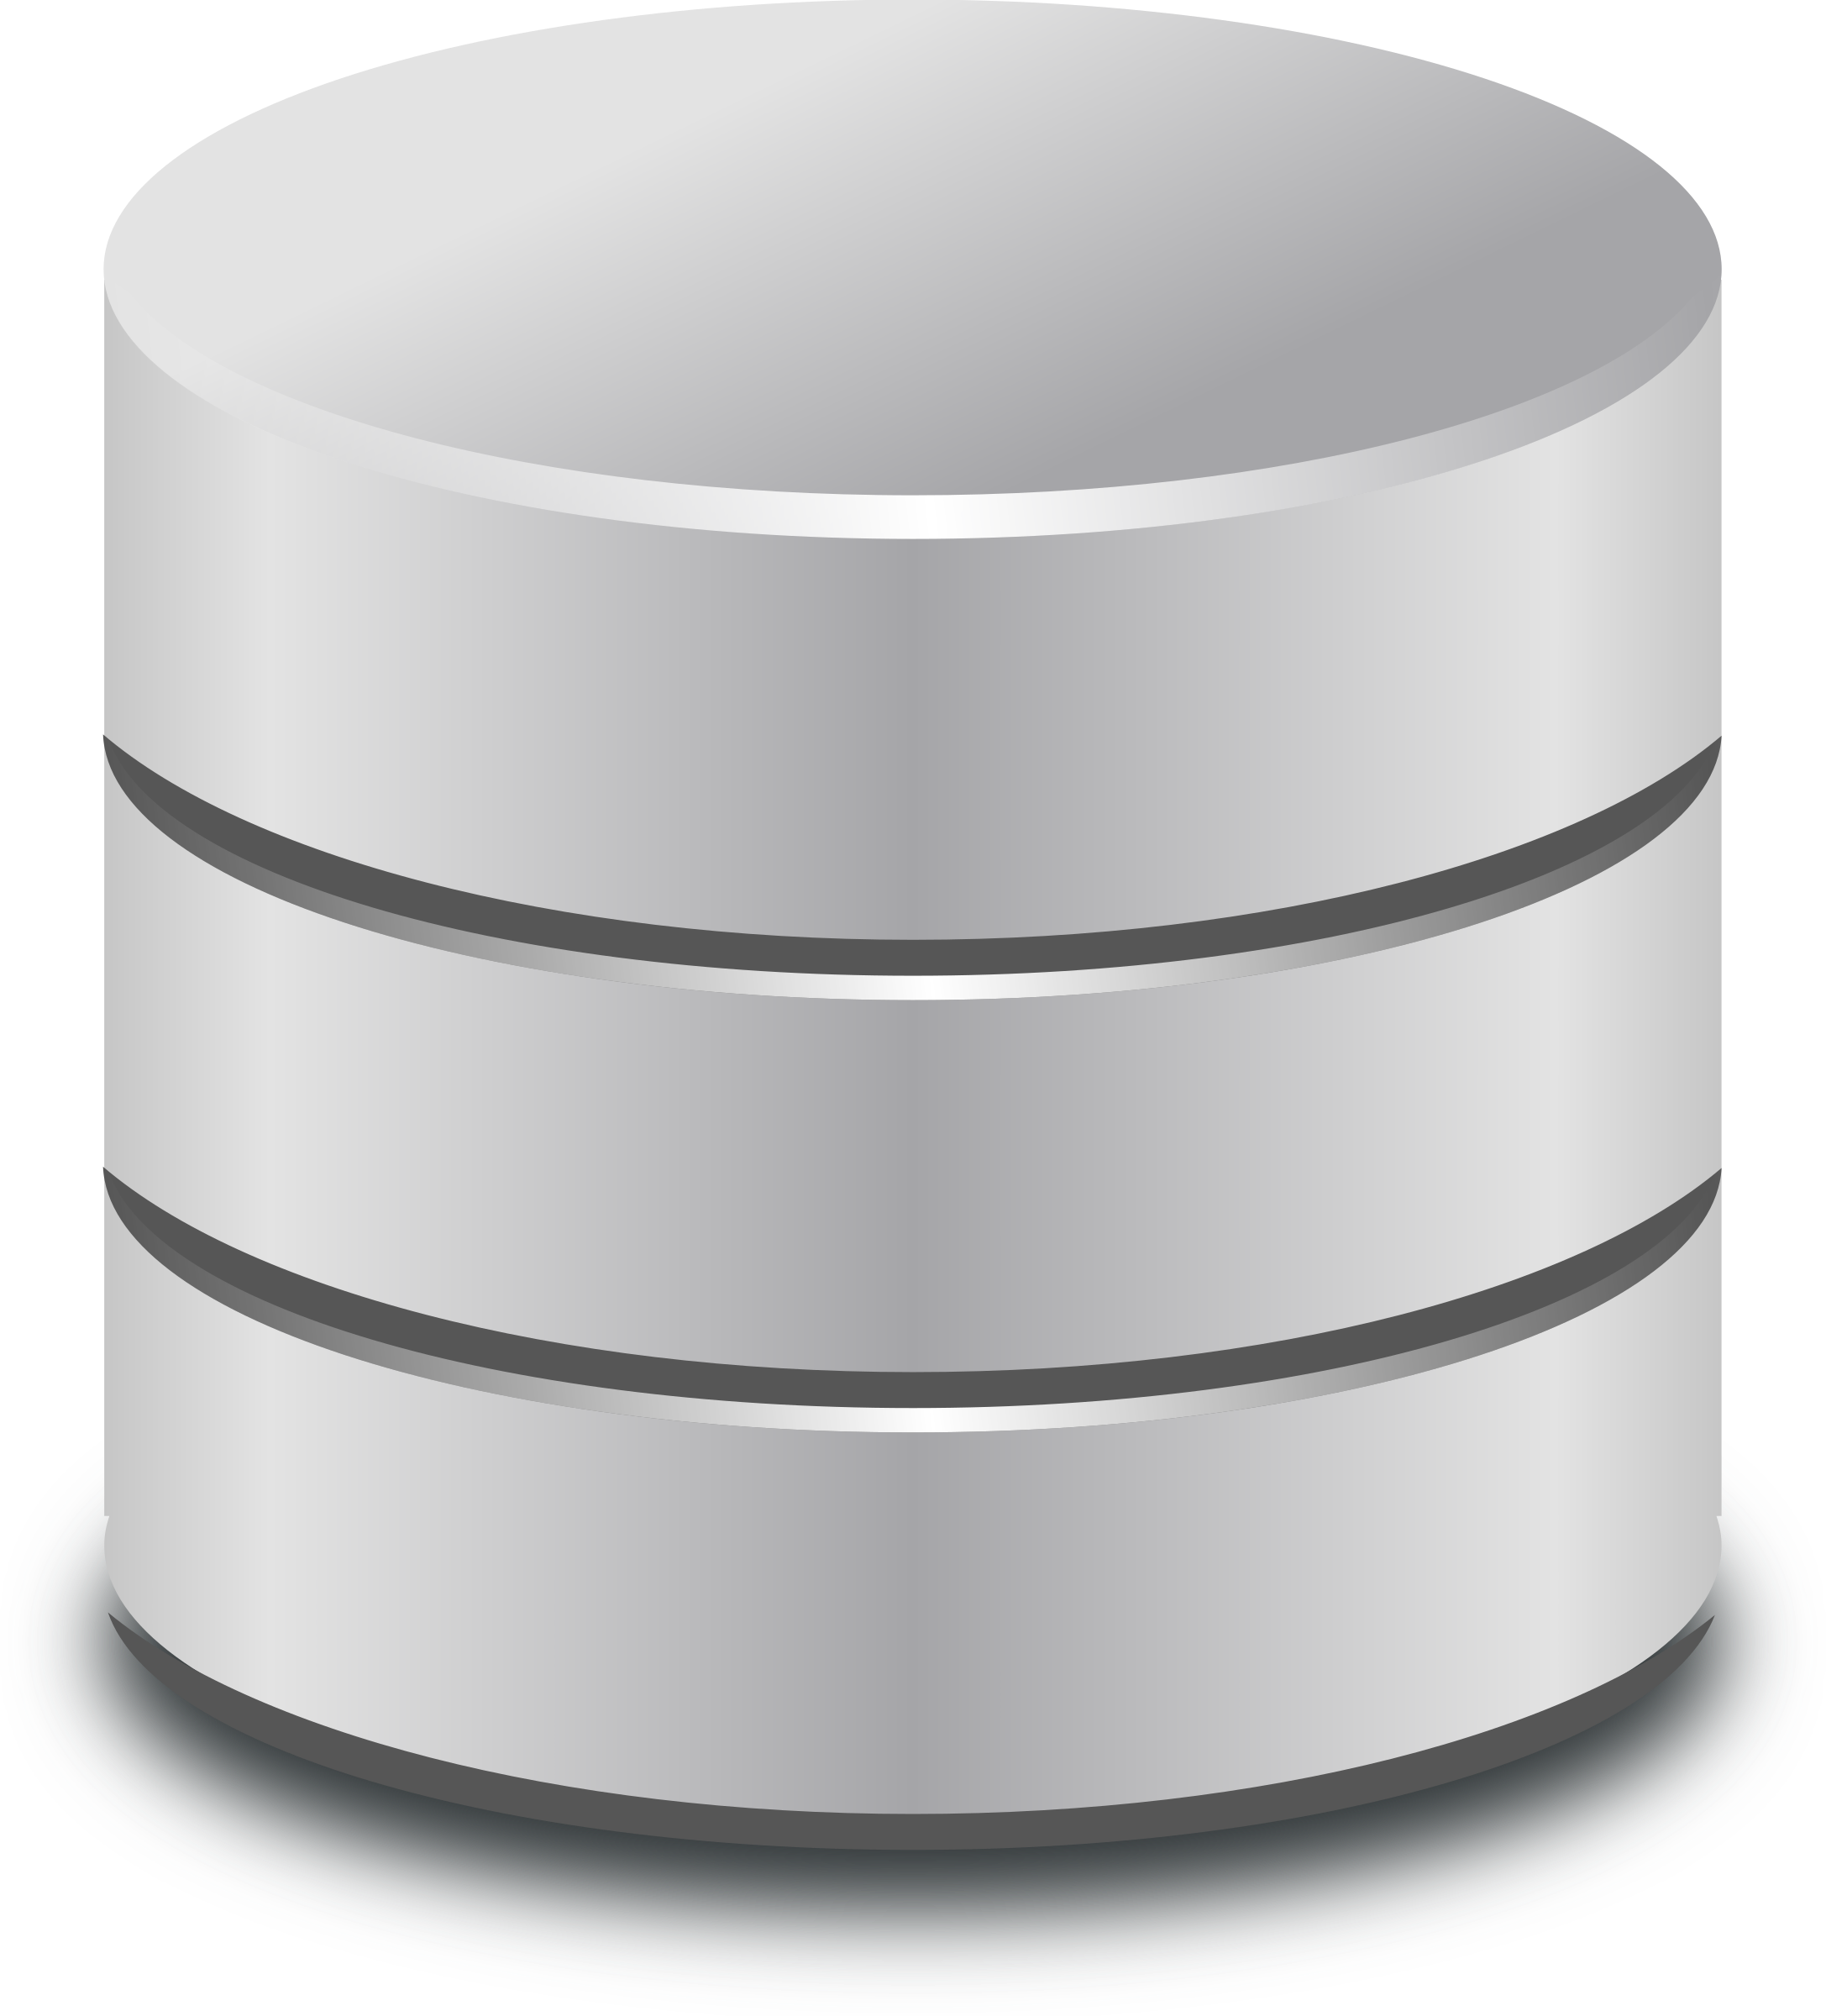 Clipart - database symbol